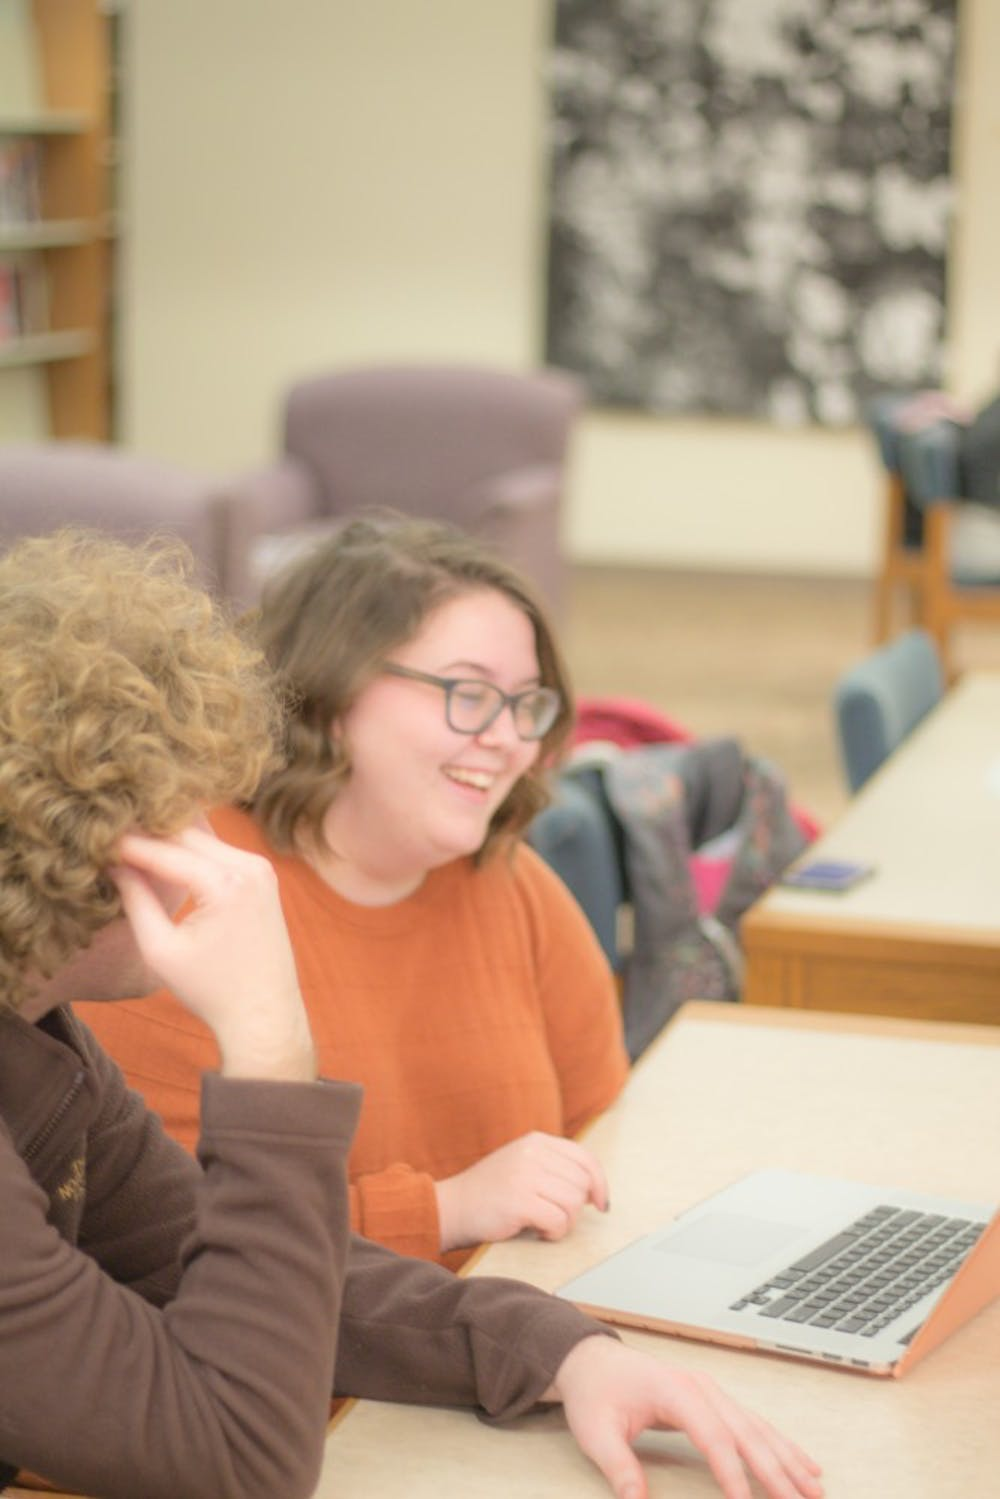 Meet the editors: Rayce Patterson and Holly Gaskill